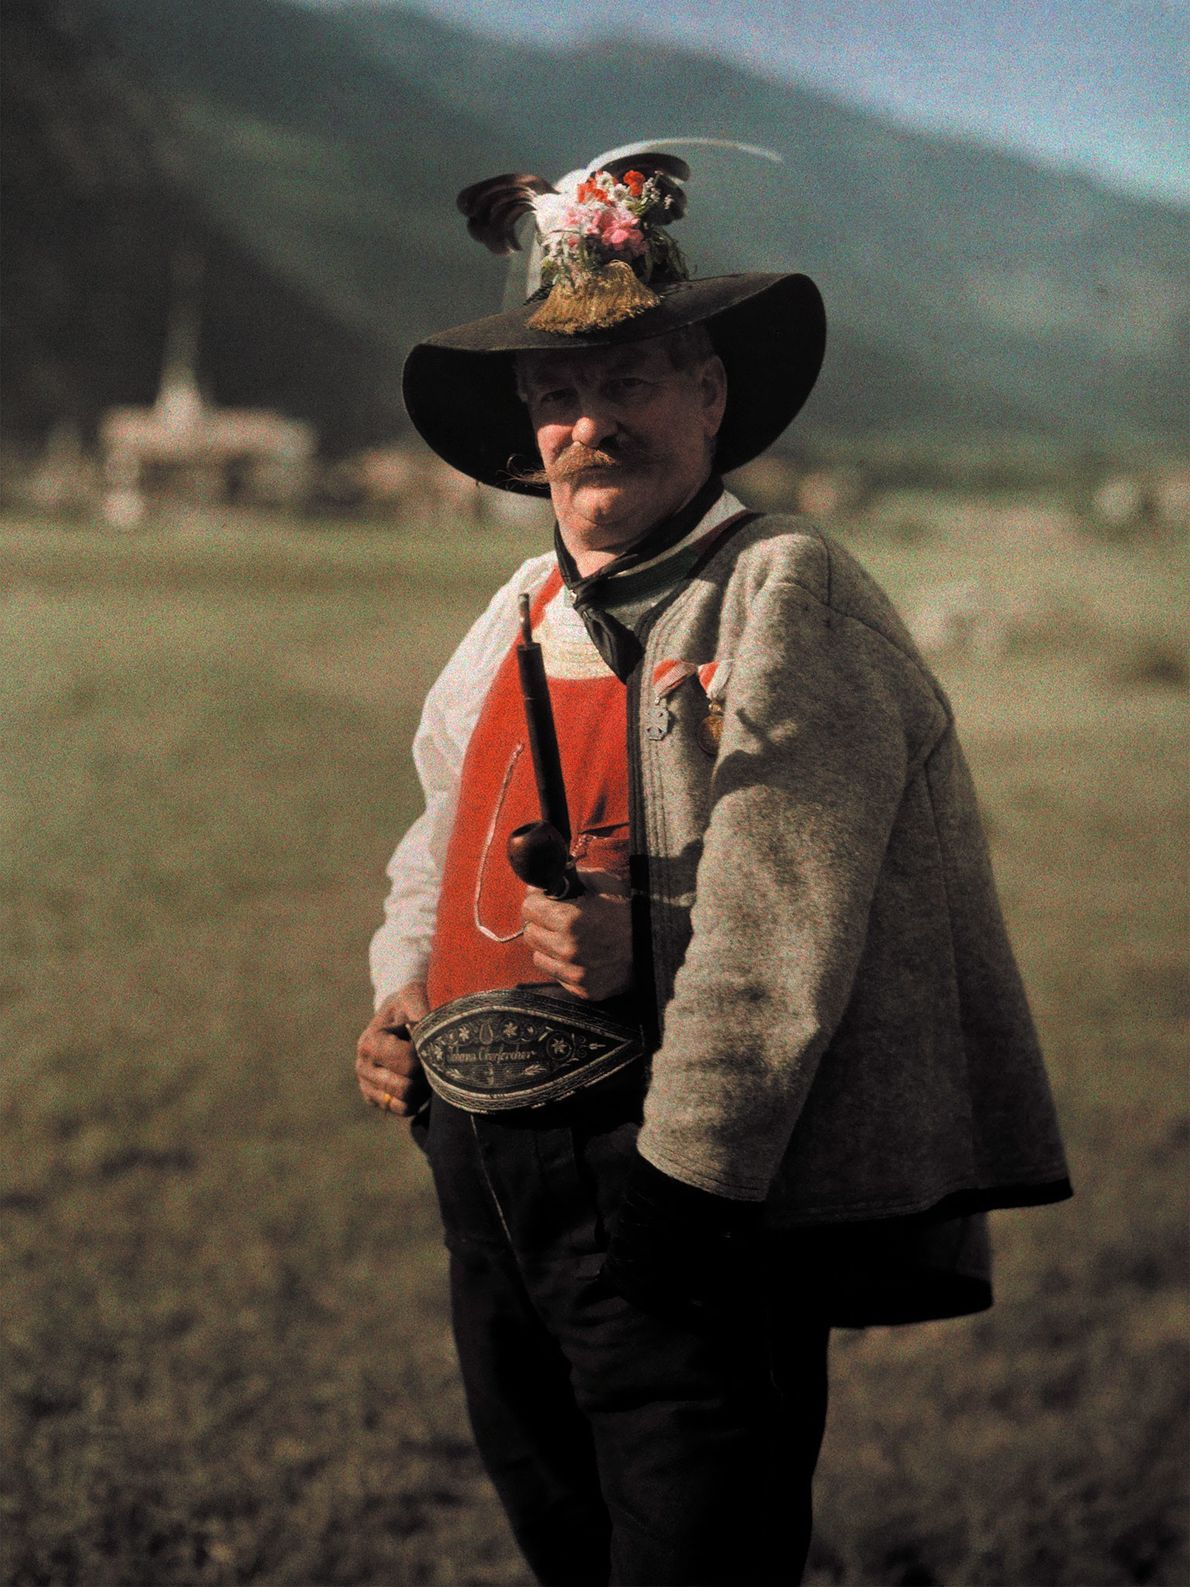 A man from Zillertal, Austria, wears an elaborate hat decorated with feathers, flowers, and gold-colored tassels.